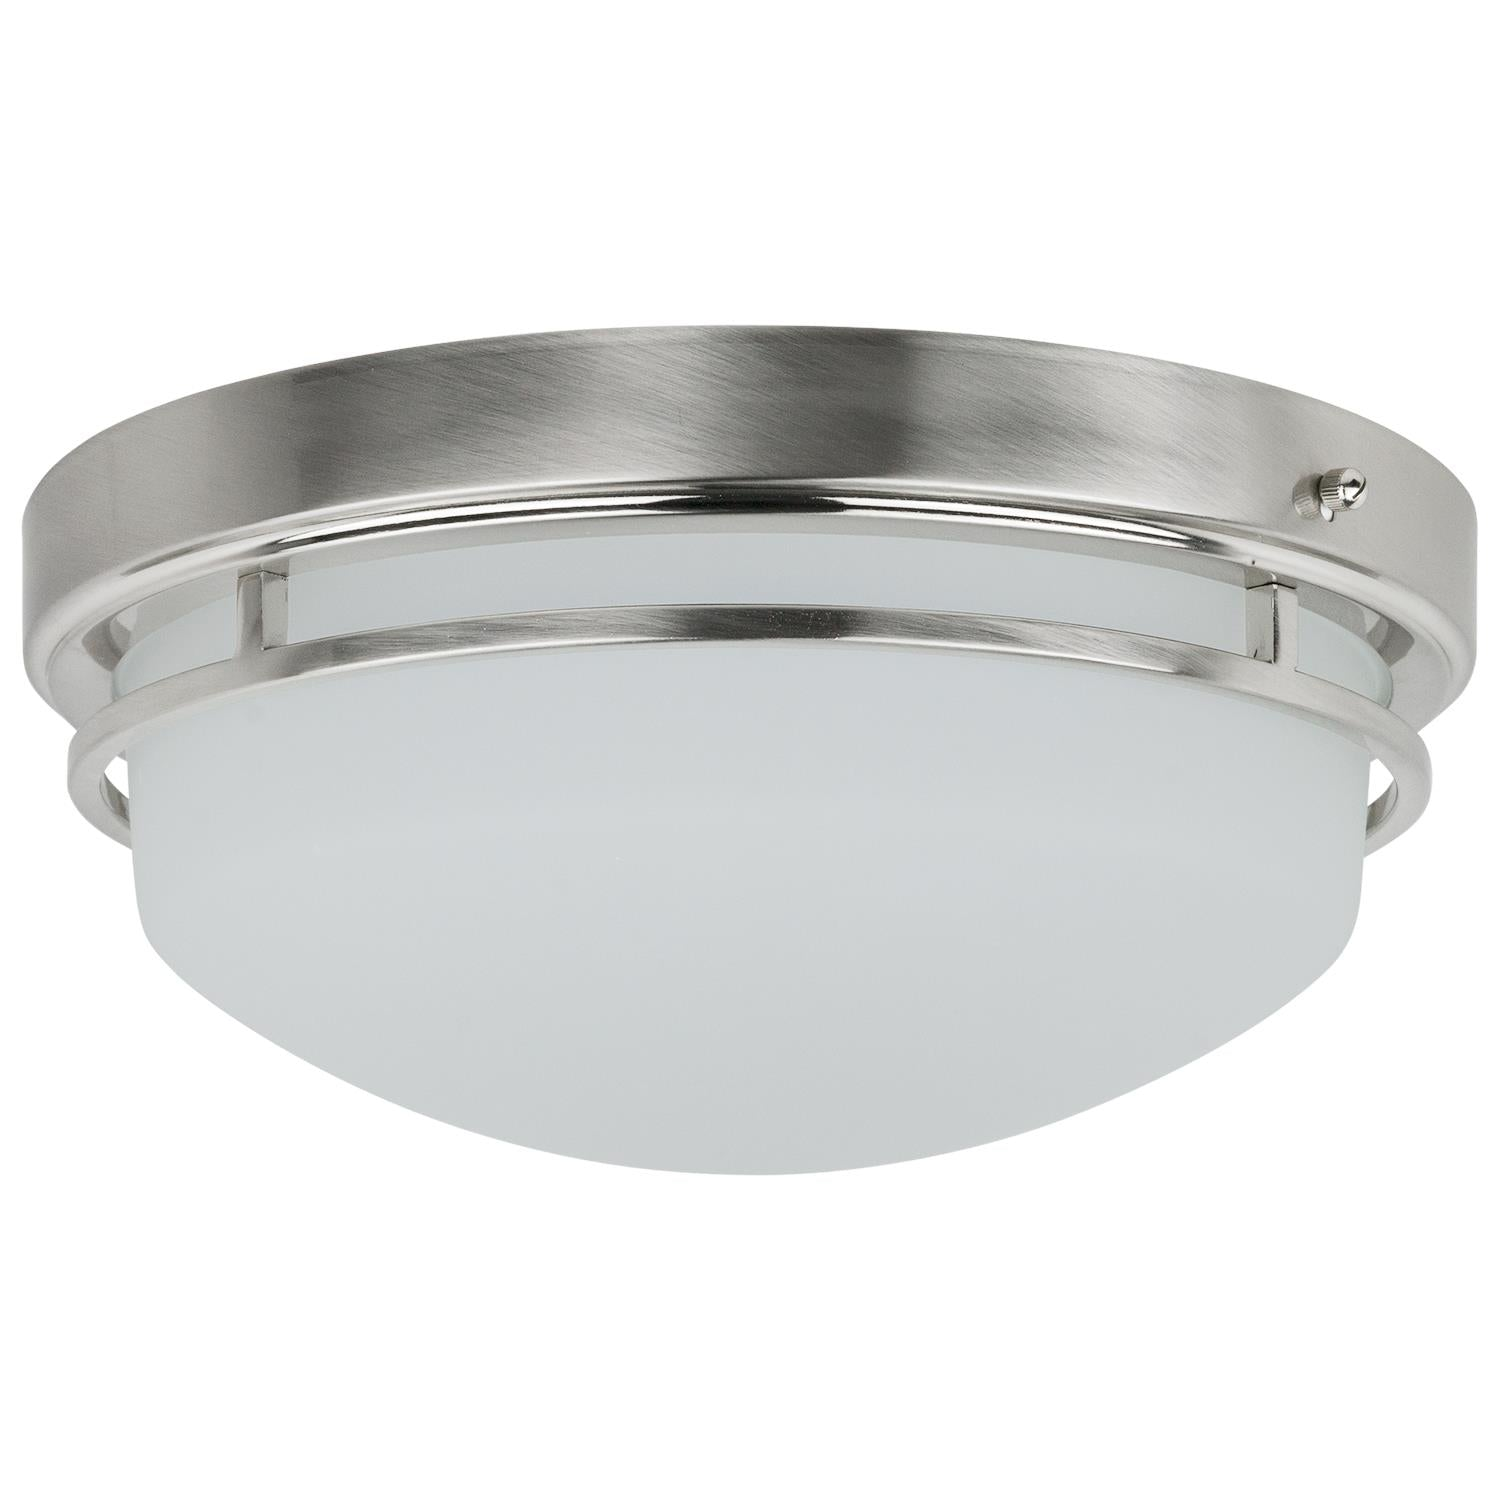 SUNLITE 23w Frosted LED Flush Mount Fixture - 3000K Warm White